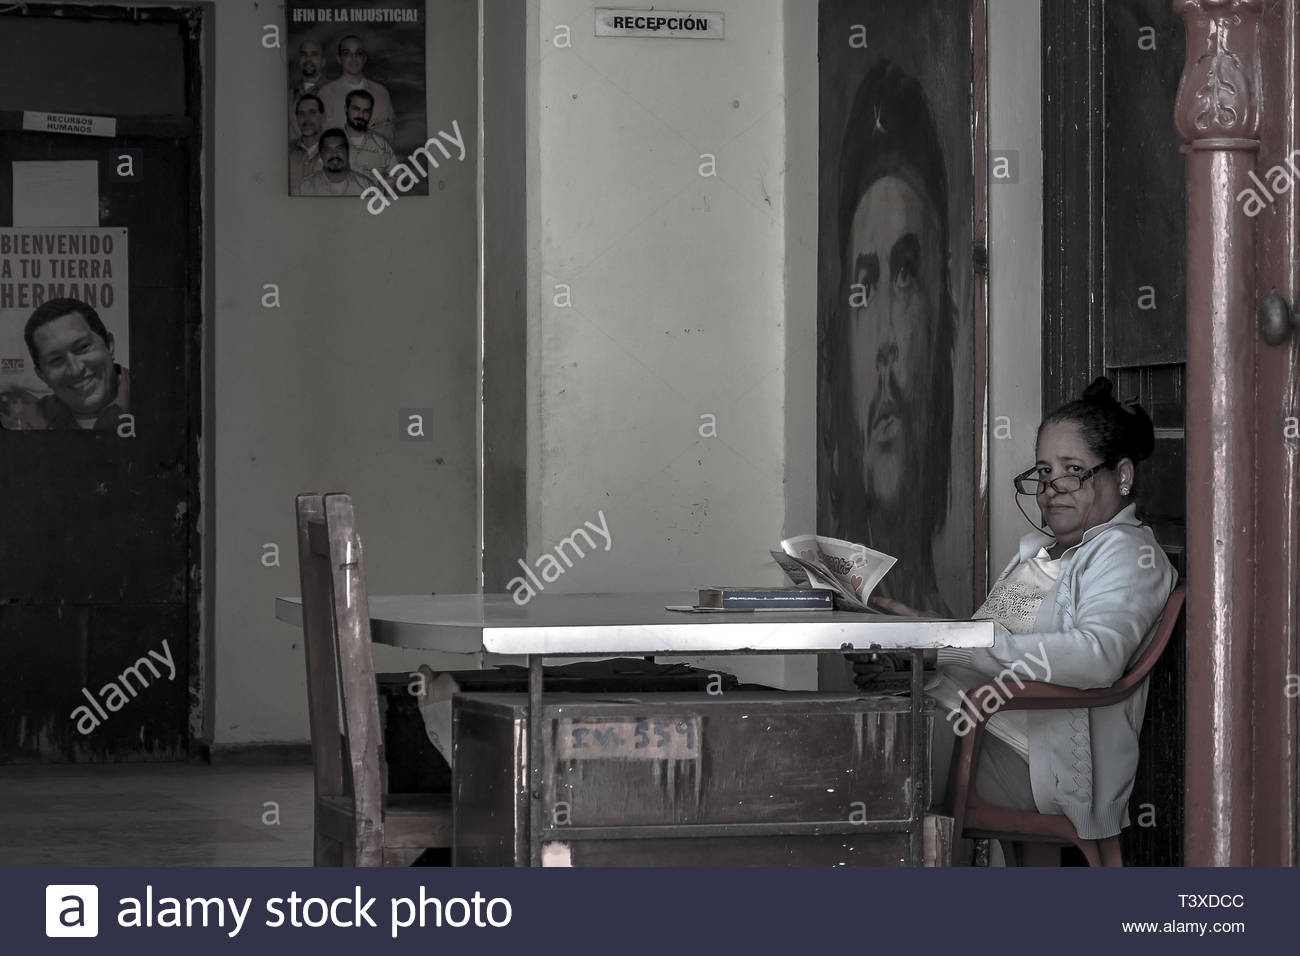 March, 2016 - Havana, Cuba: A state employee reads the newspaper at the reception of a Defense Committee of the Revolution (CDR). In the background, t - Stock Image